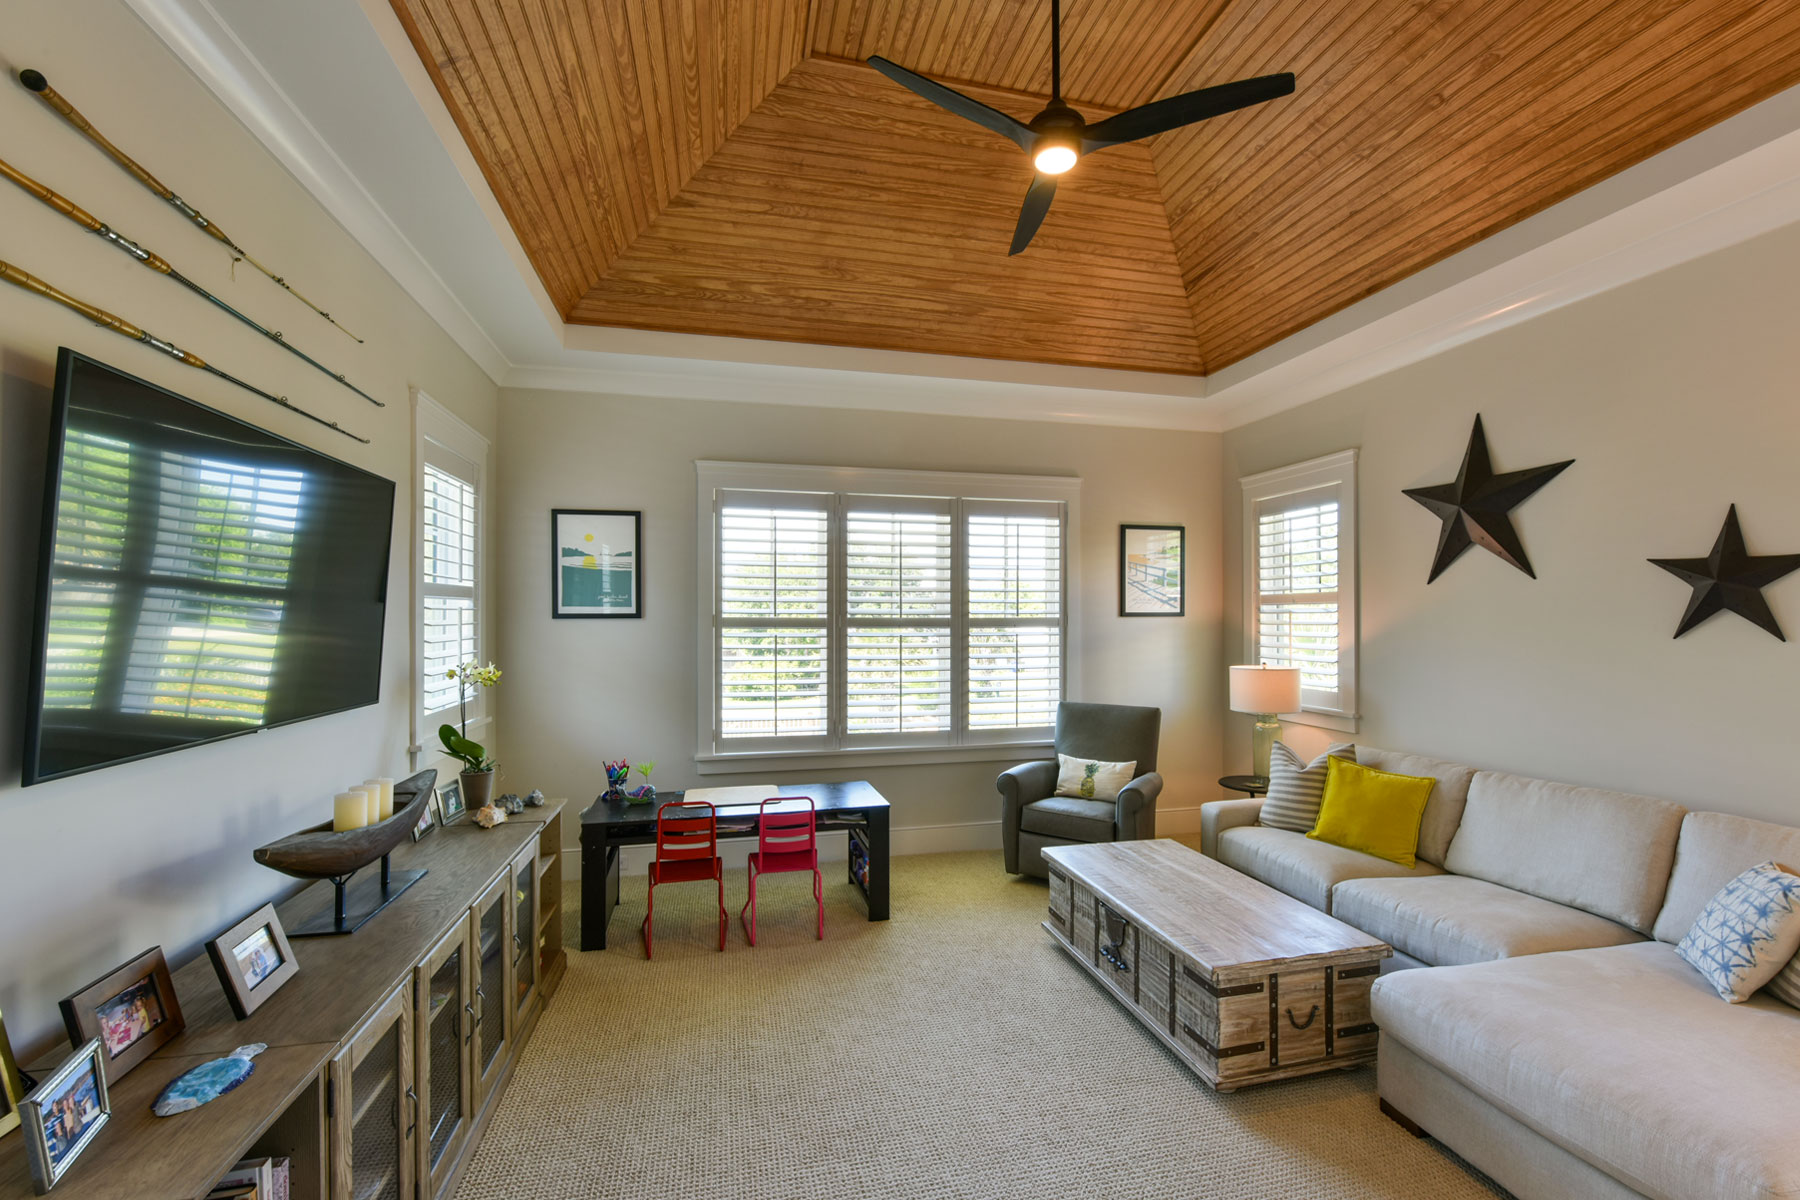 Kids family room with vaulted, wood ceiling